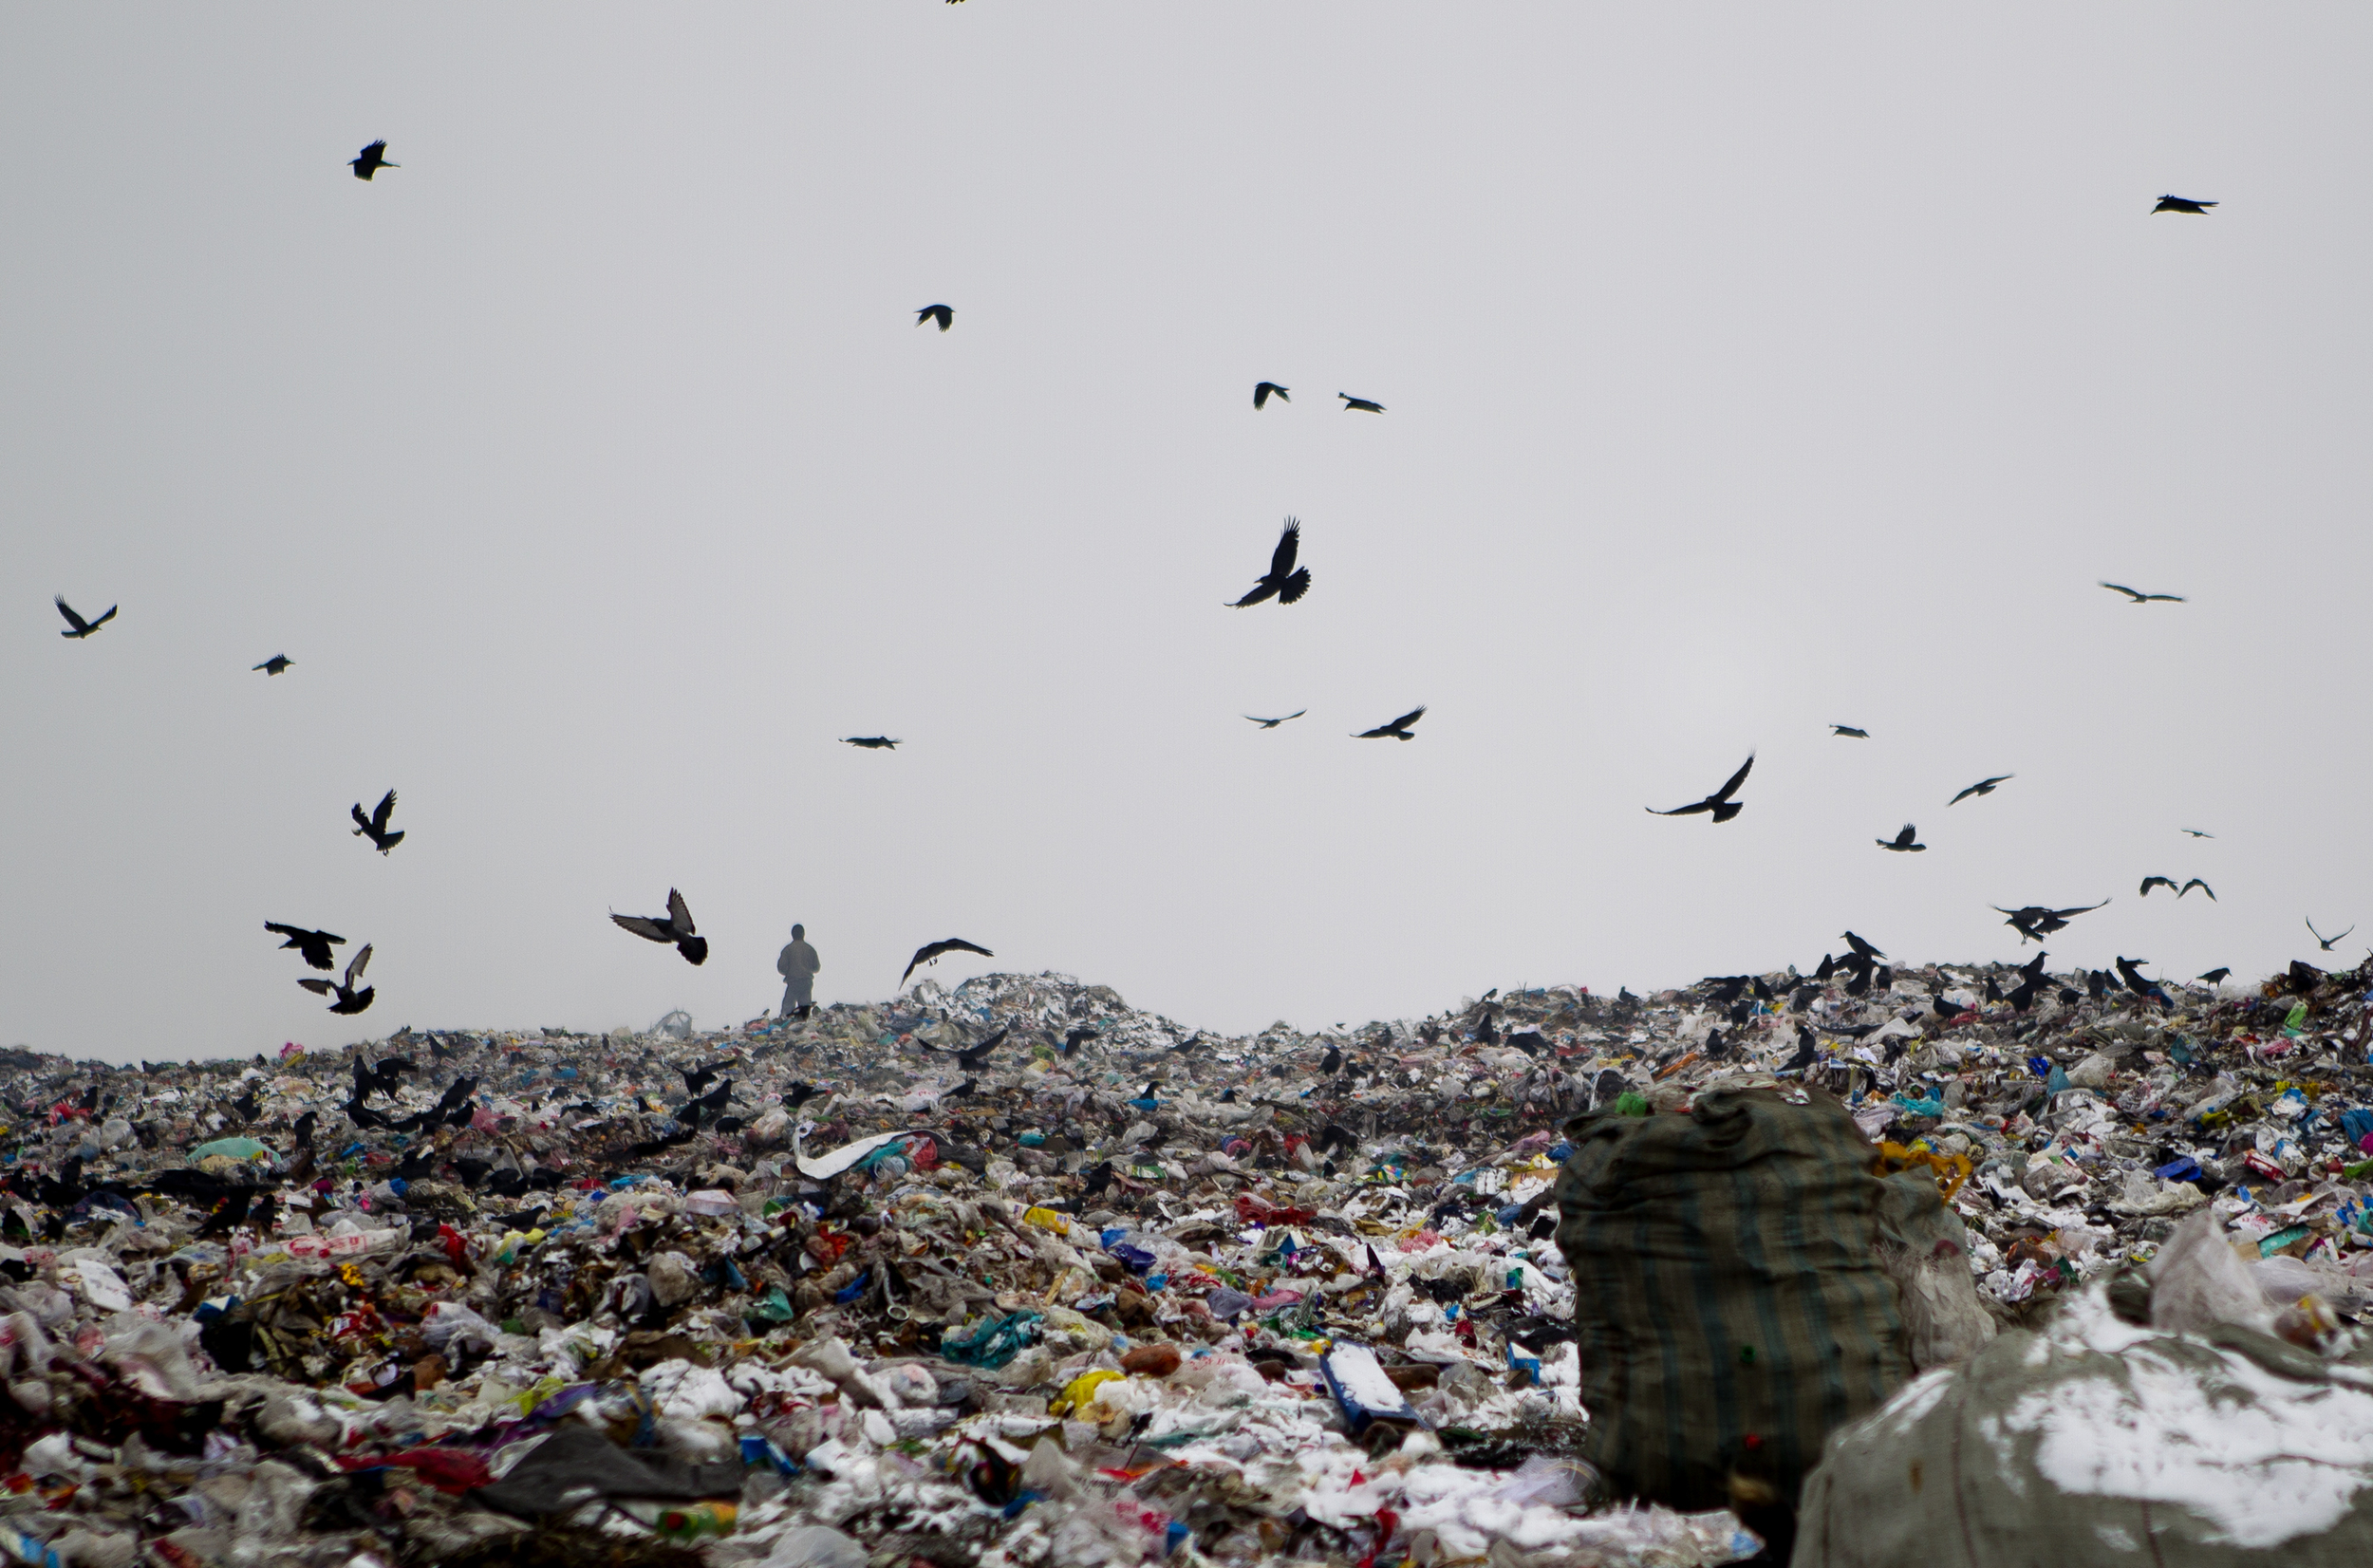 A homeless man stands in the distance at a large landfill outside of Bishkek. Many homeless people pick through trash at the landfill, or from dumpsters in town,and some even live at the landfill.